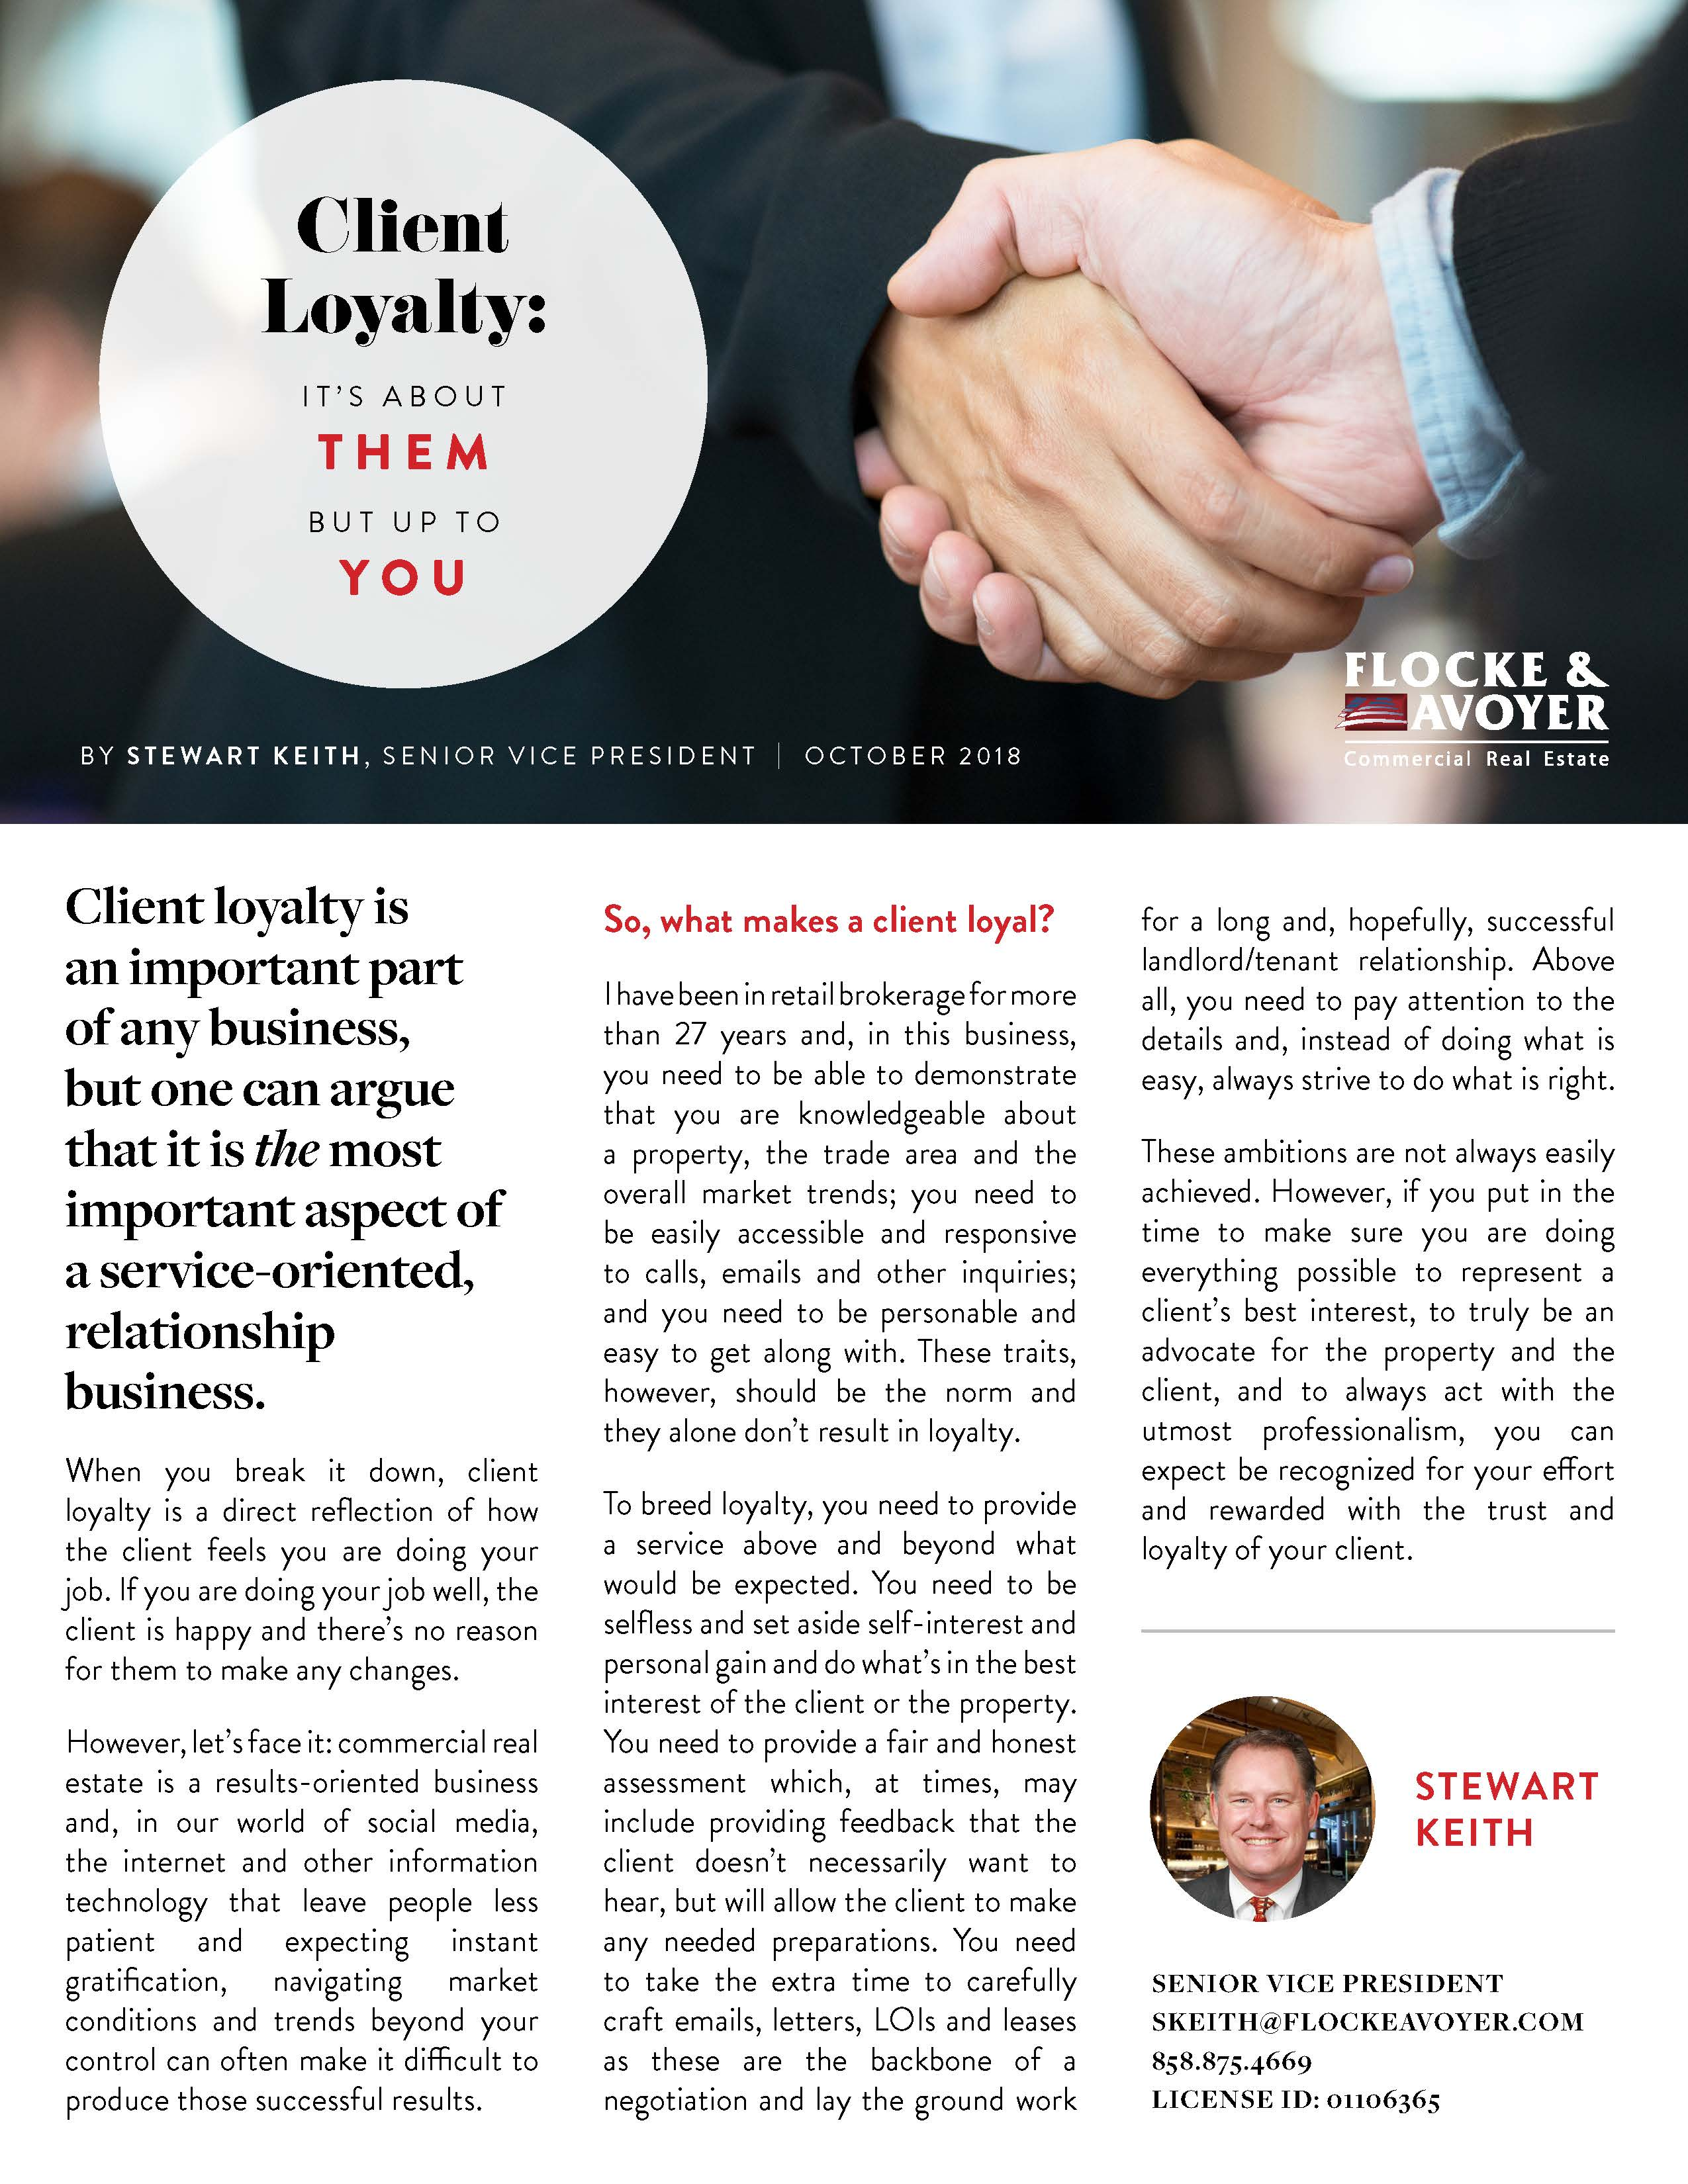 Fa Stewart Keith Client Loyalty It's About Them But Up To You